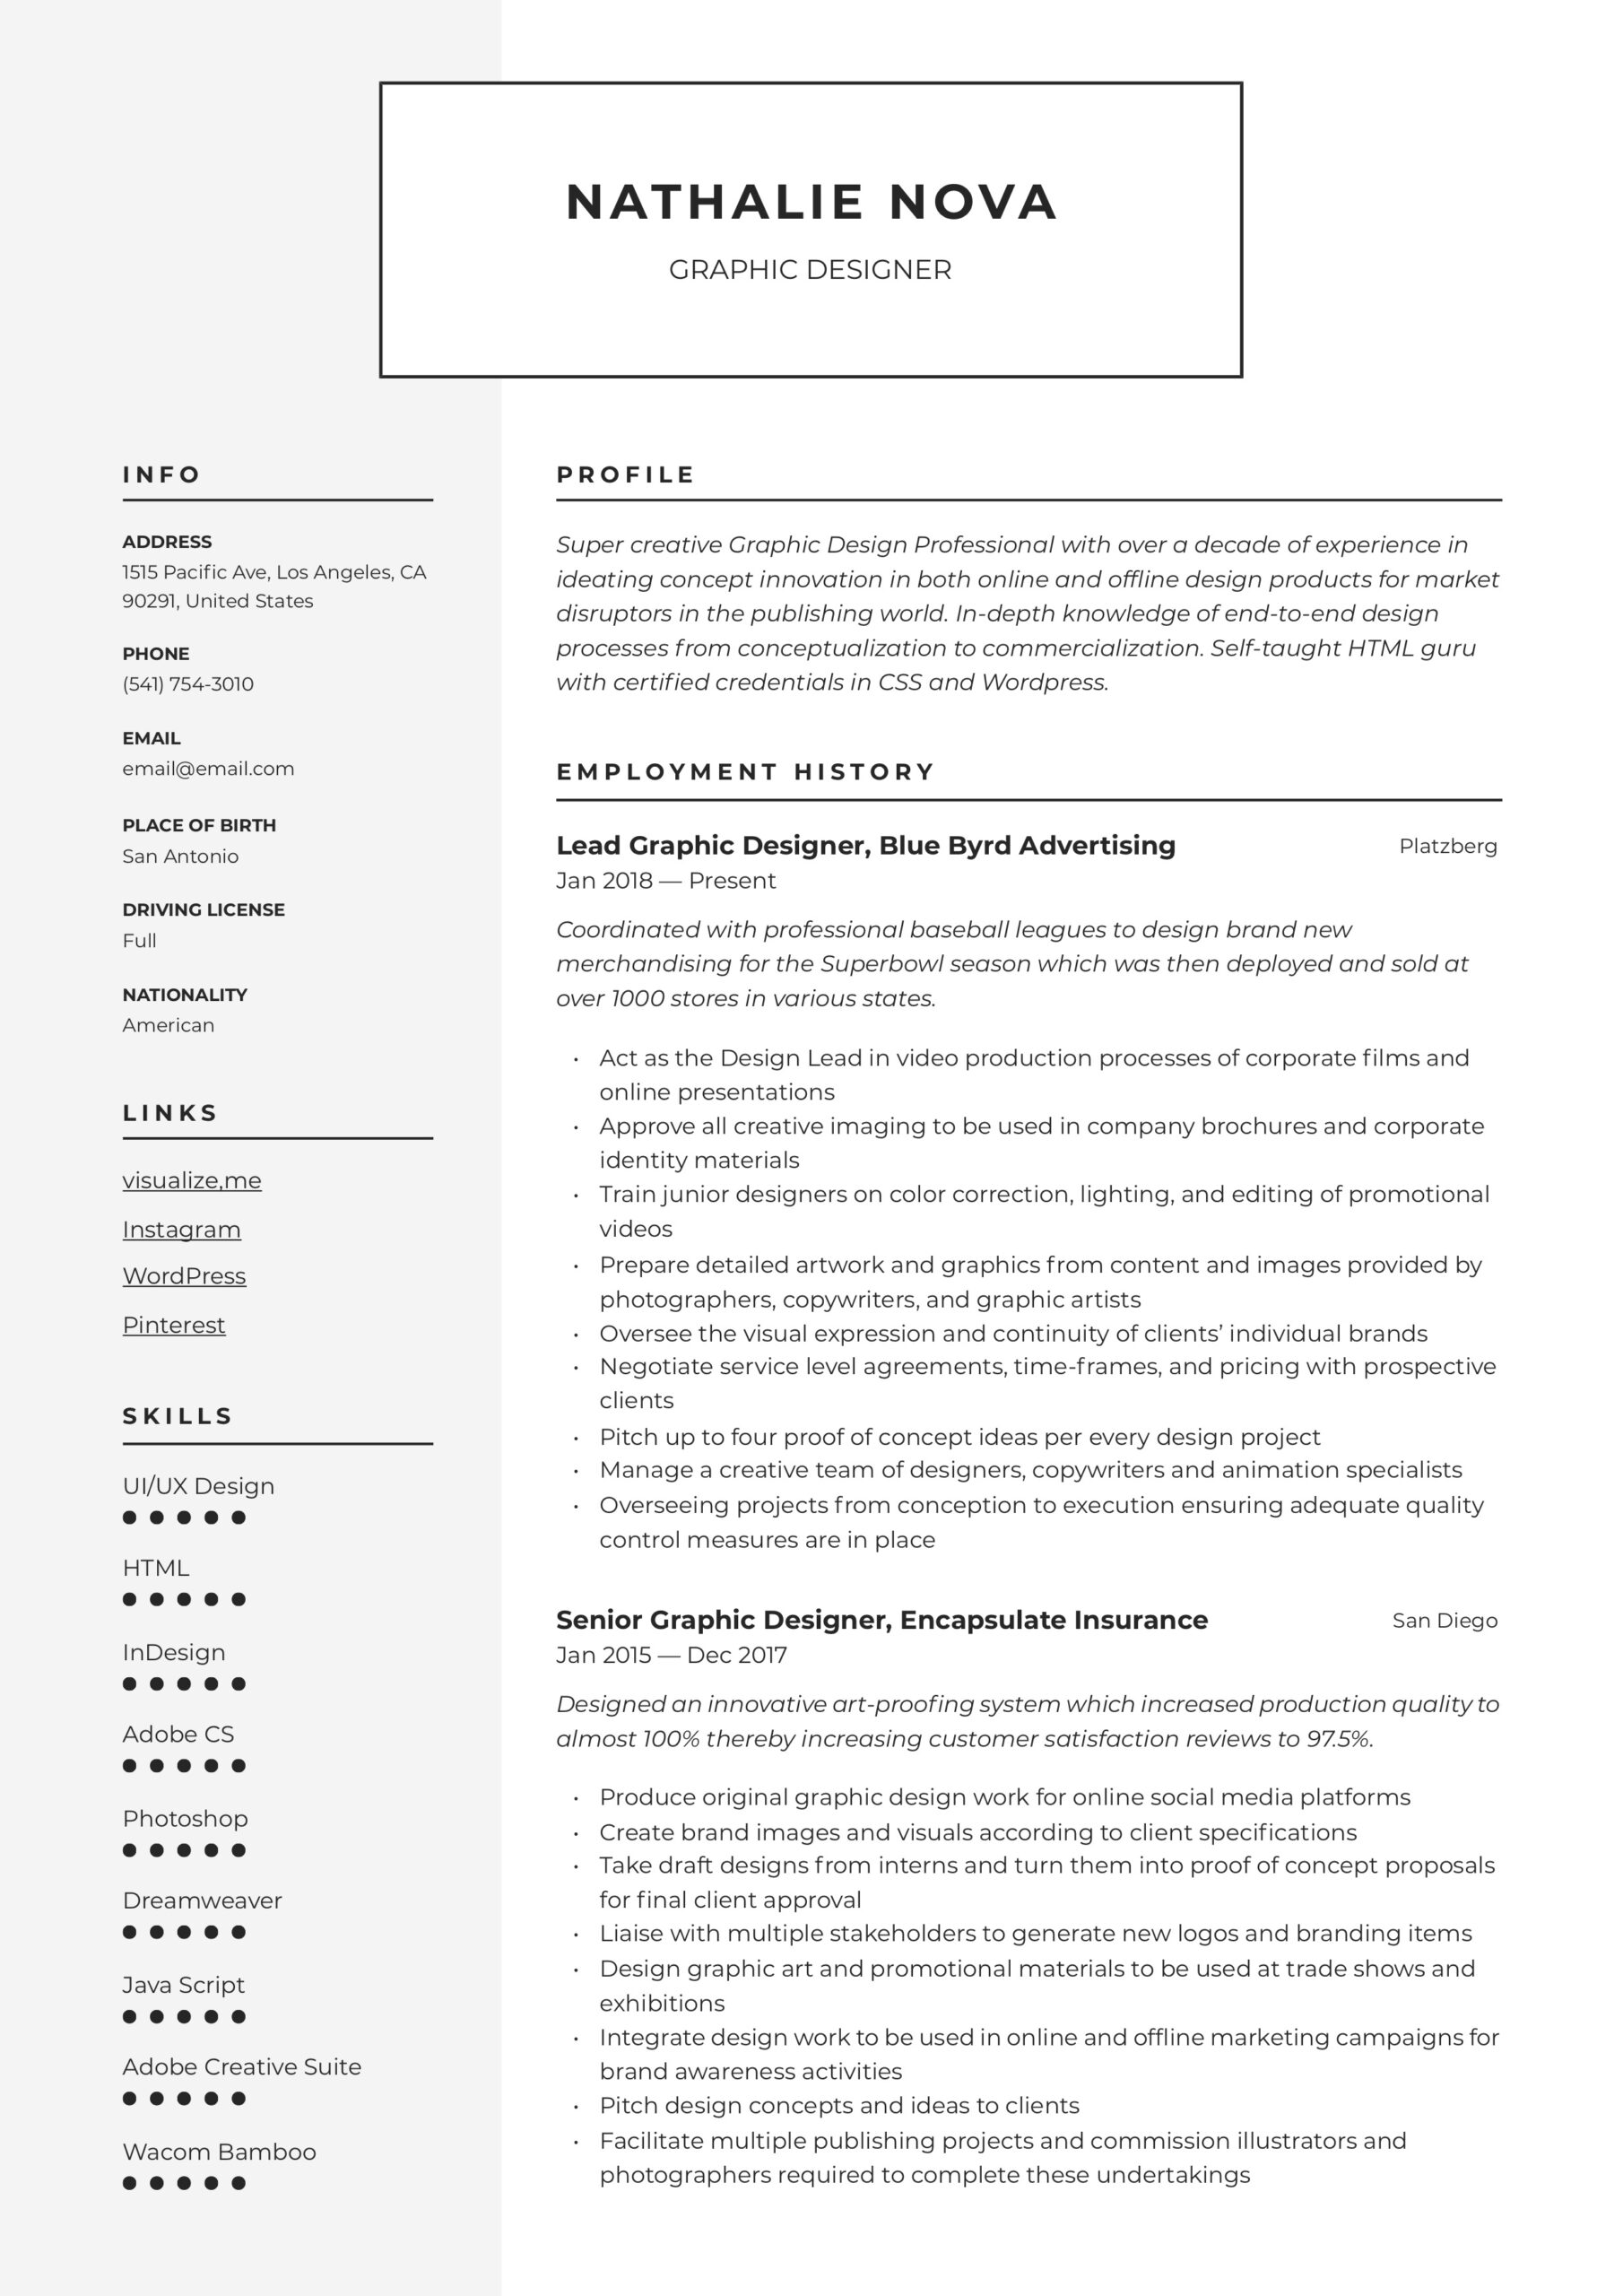 graphic designer resume writing guide examples visual sample impressive with cover letter Resume Visual Designer Resume Sample